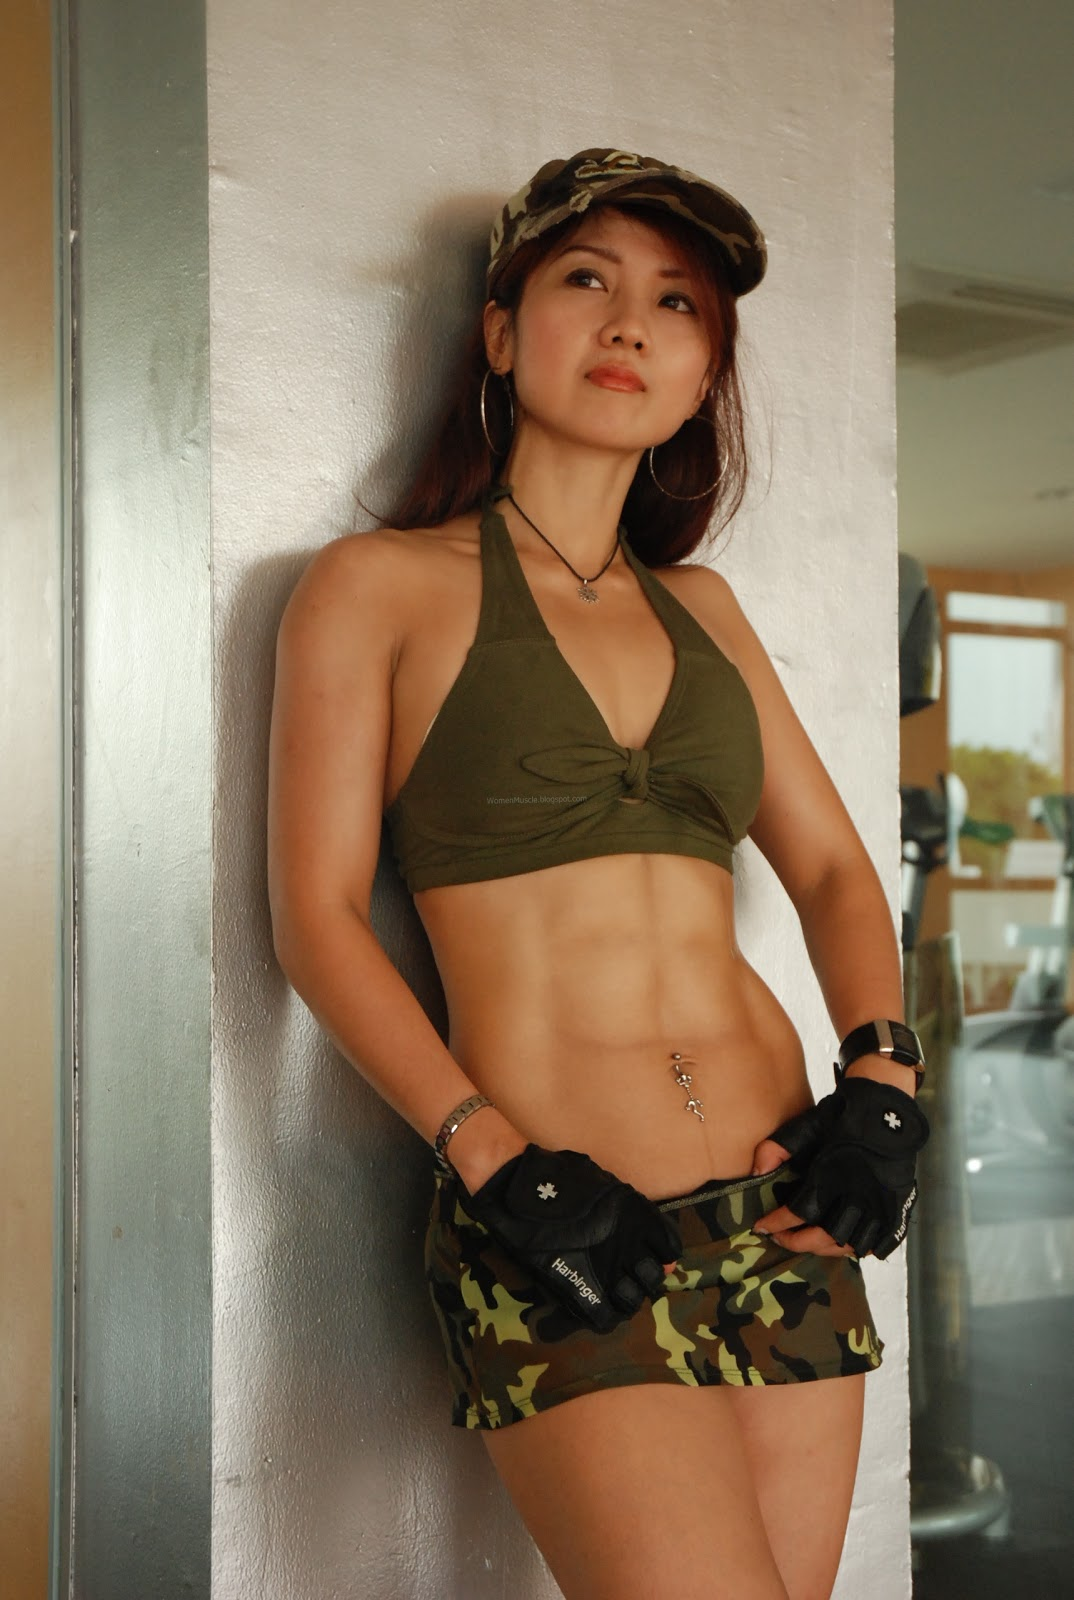 Andjani Kwee - Sixpack fitness girl model of the month 2010 !